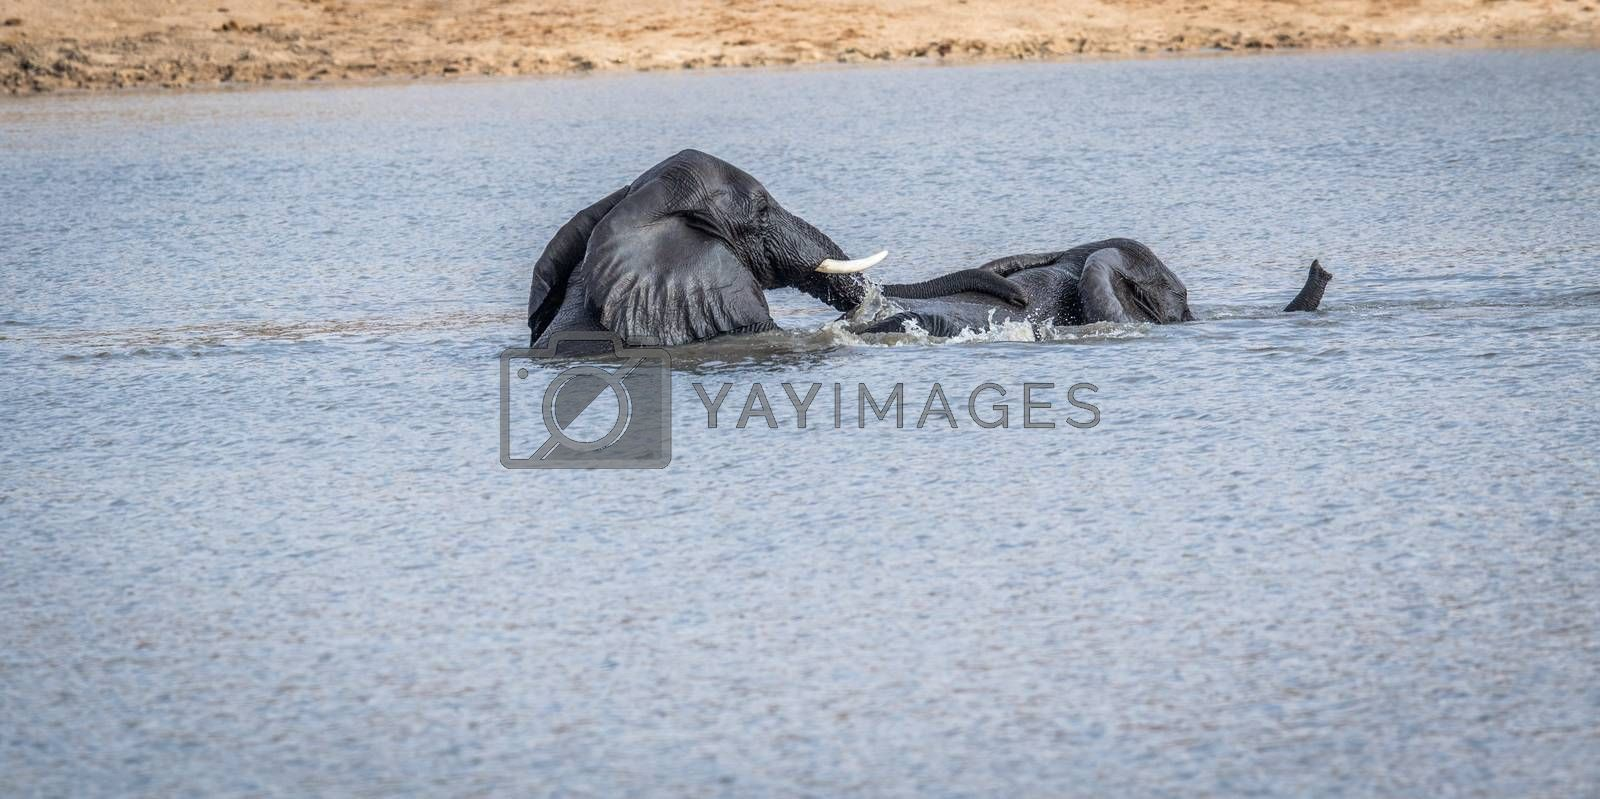 Two Elephants playing in the water in the Kruger National Park, South Africa.